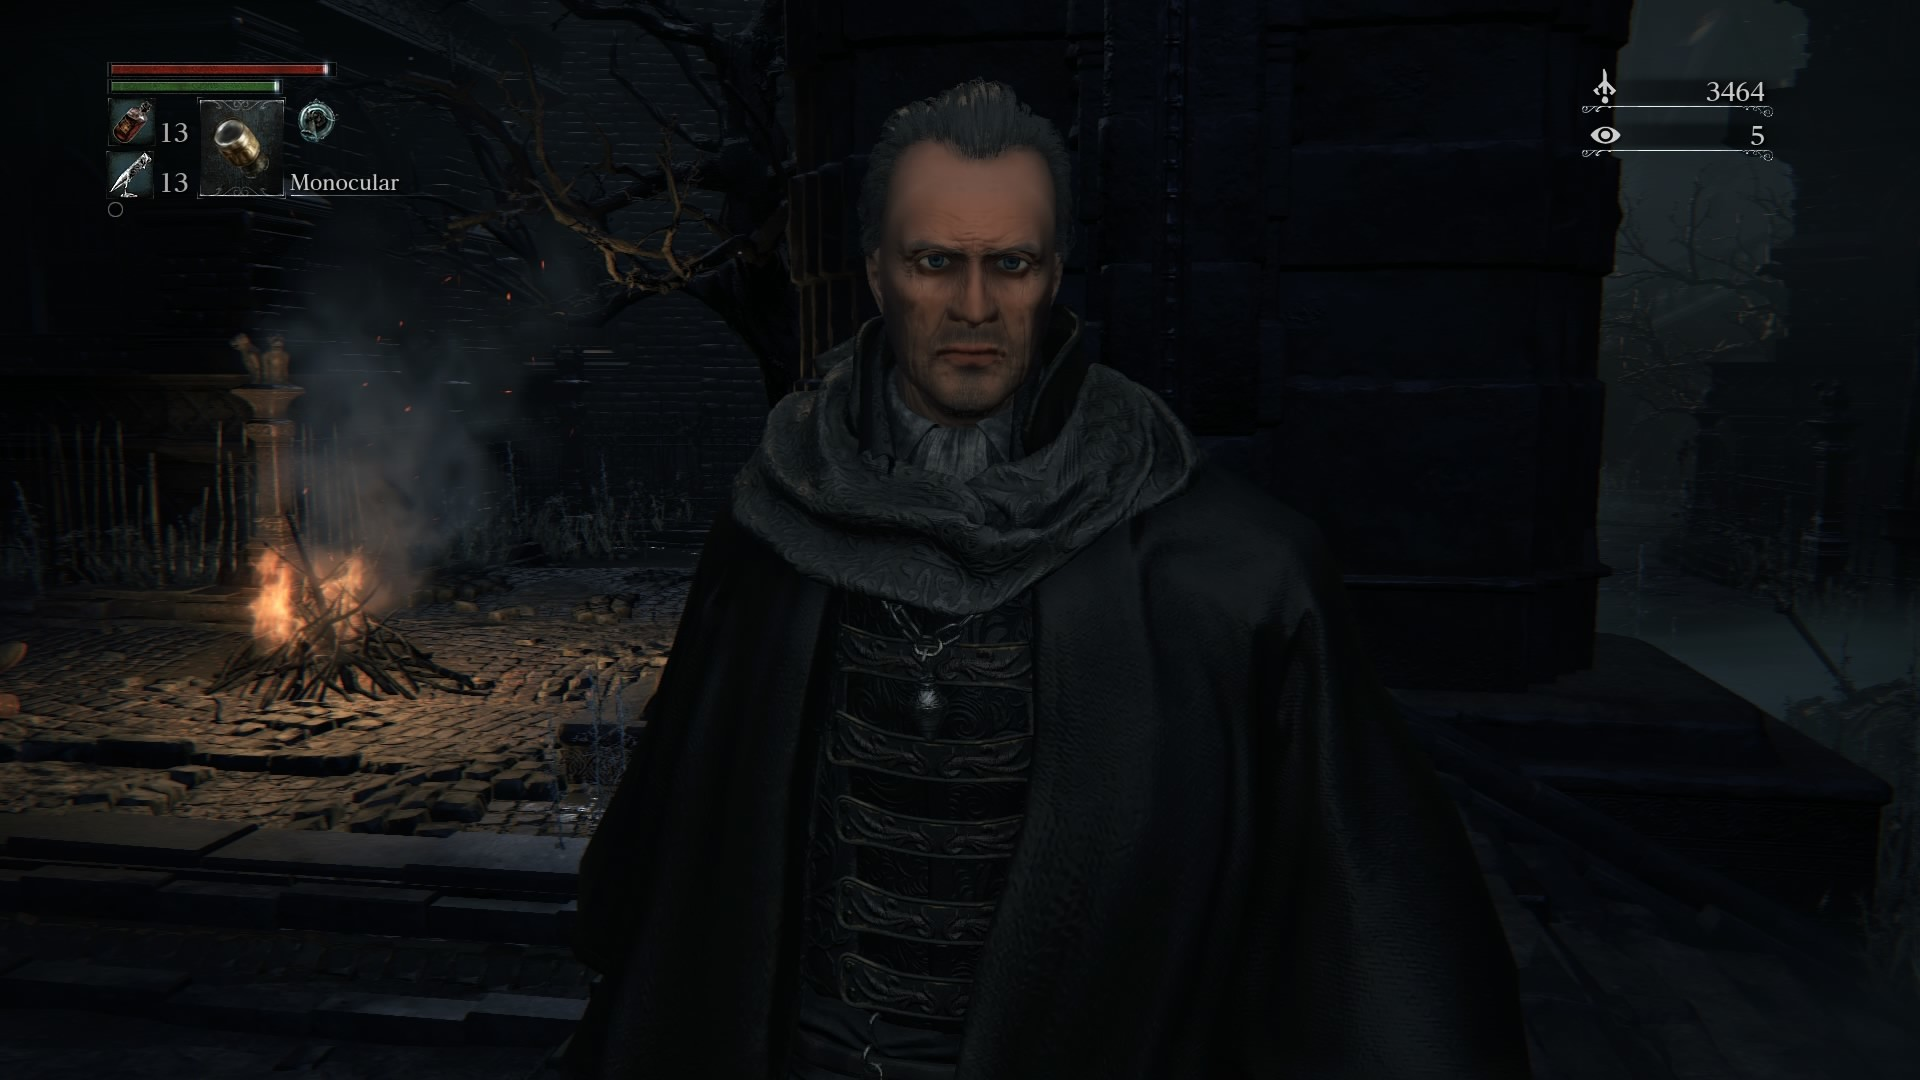 Res: 1920x1080, It's post your Character Monday! With your fashion ! - Bloodborne Message  Board for PlayStation 4 - GameFAQs